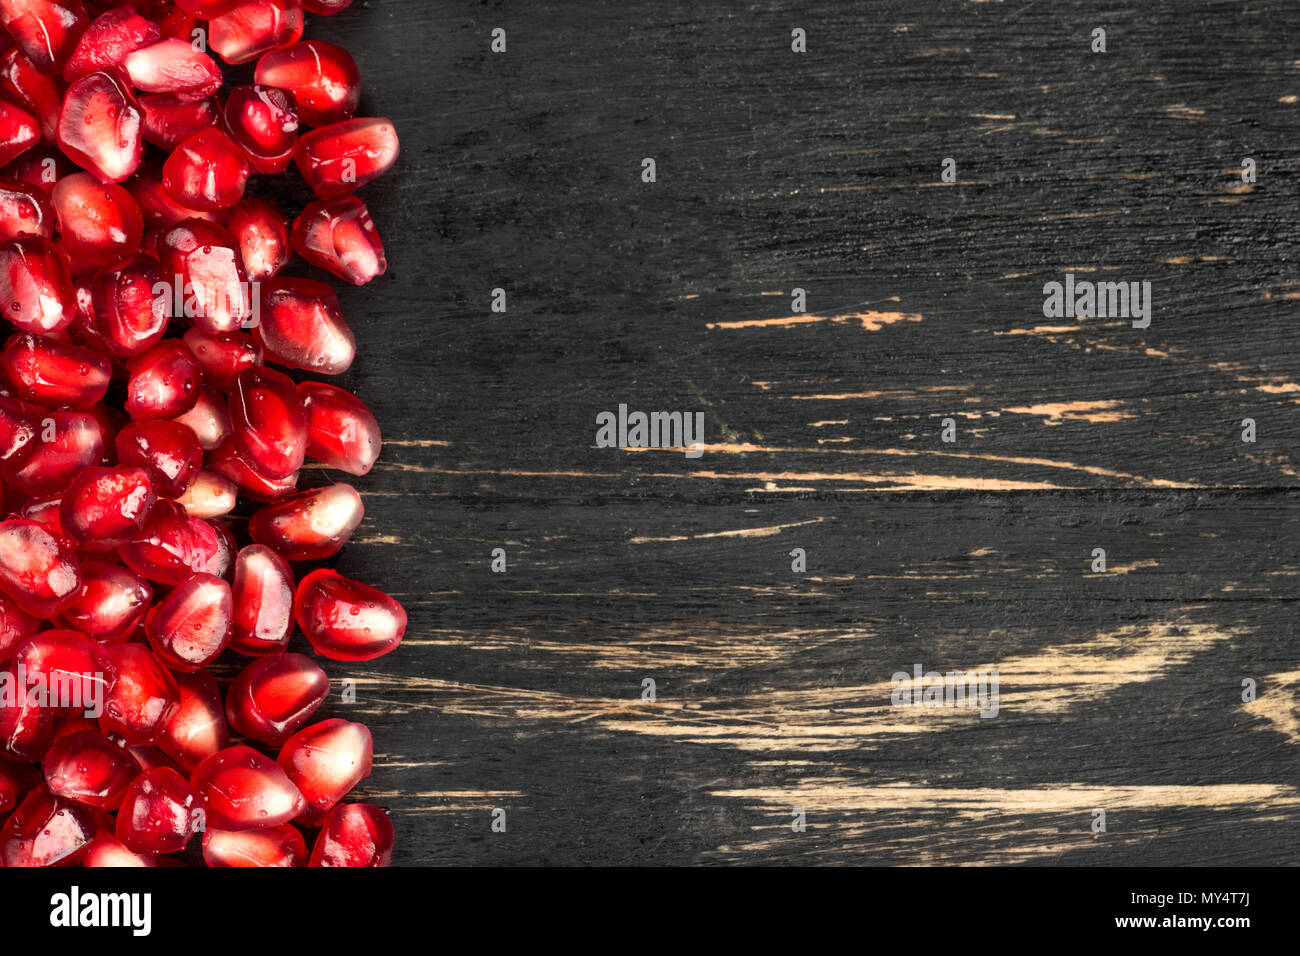 Scattered pomegranate seeds on a blank wooden background - Stock Image